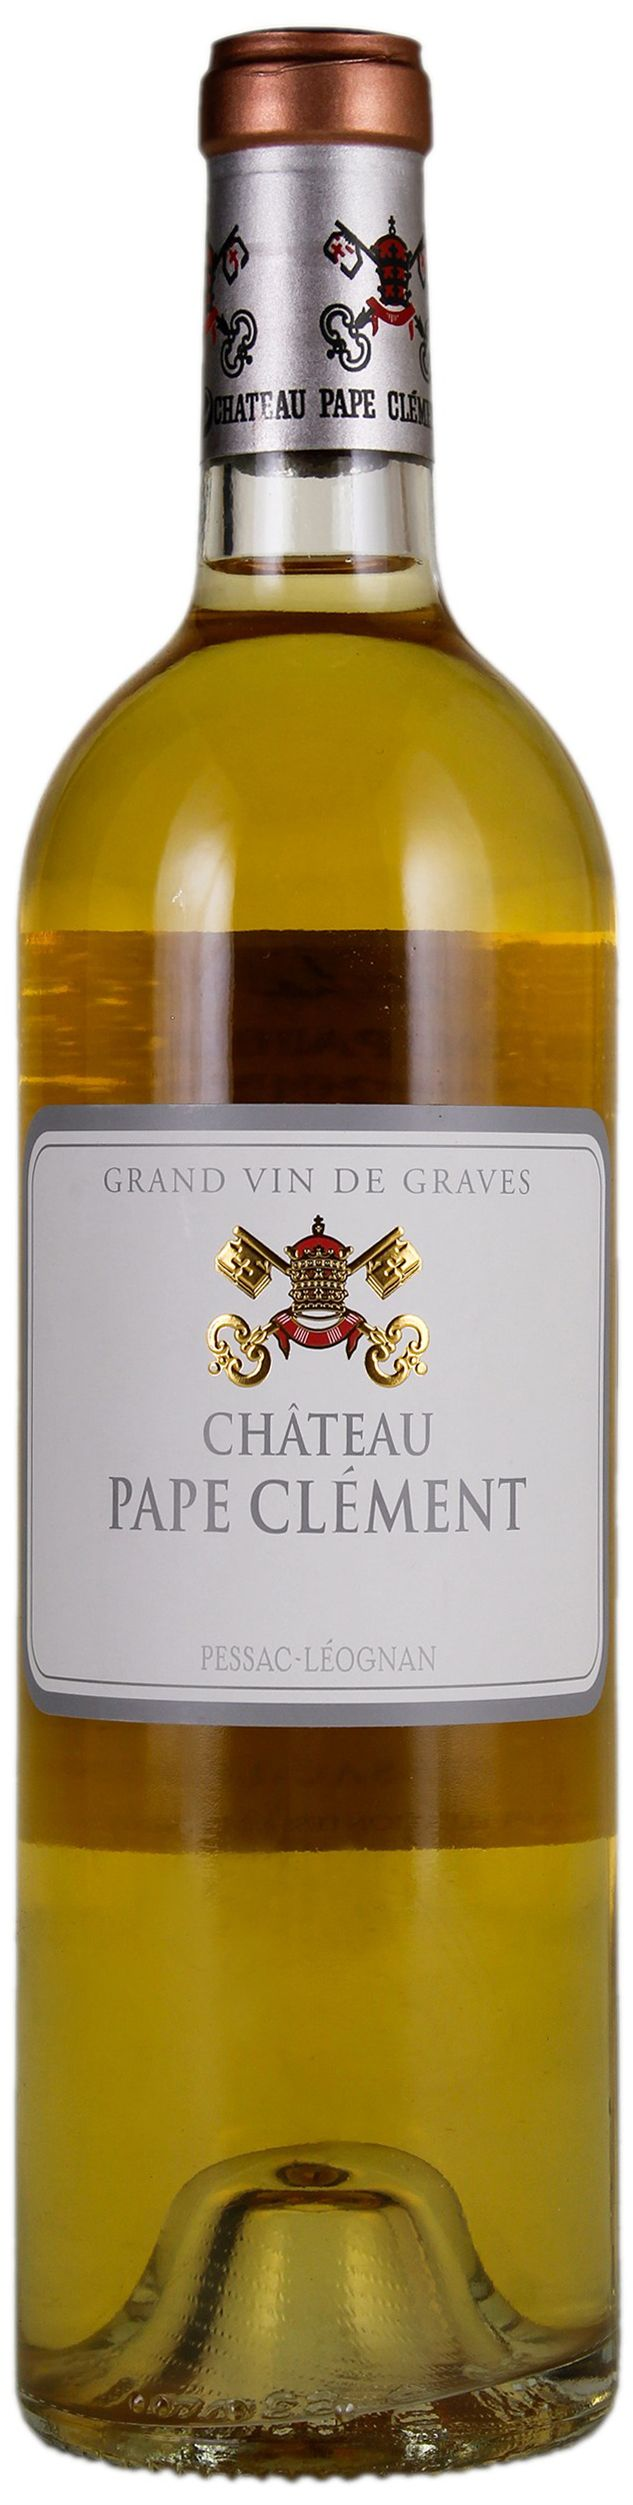 Chateau Pape Clement,  Blanc Grand Cru Classe De Graves, 2007